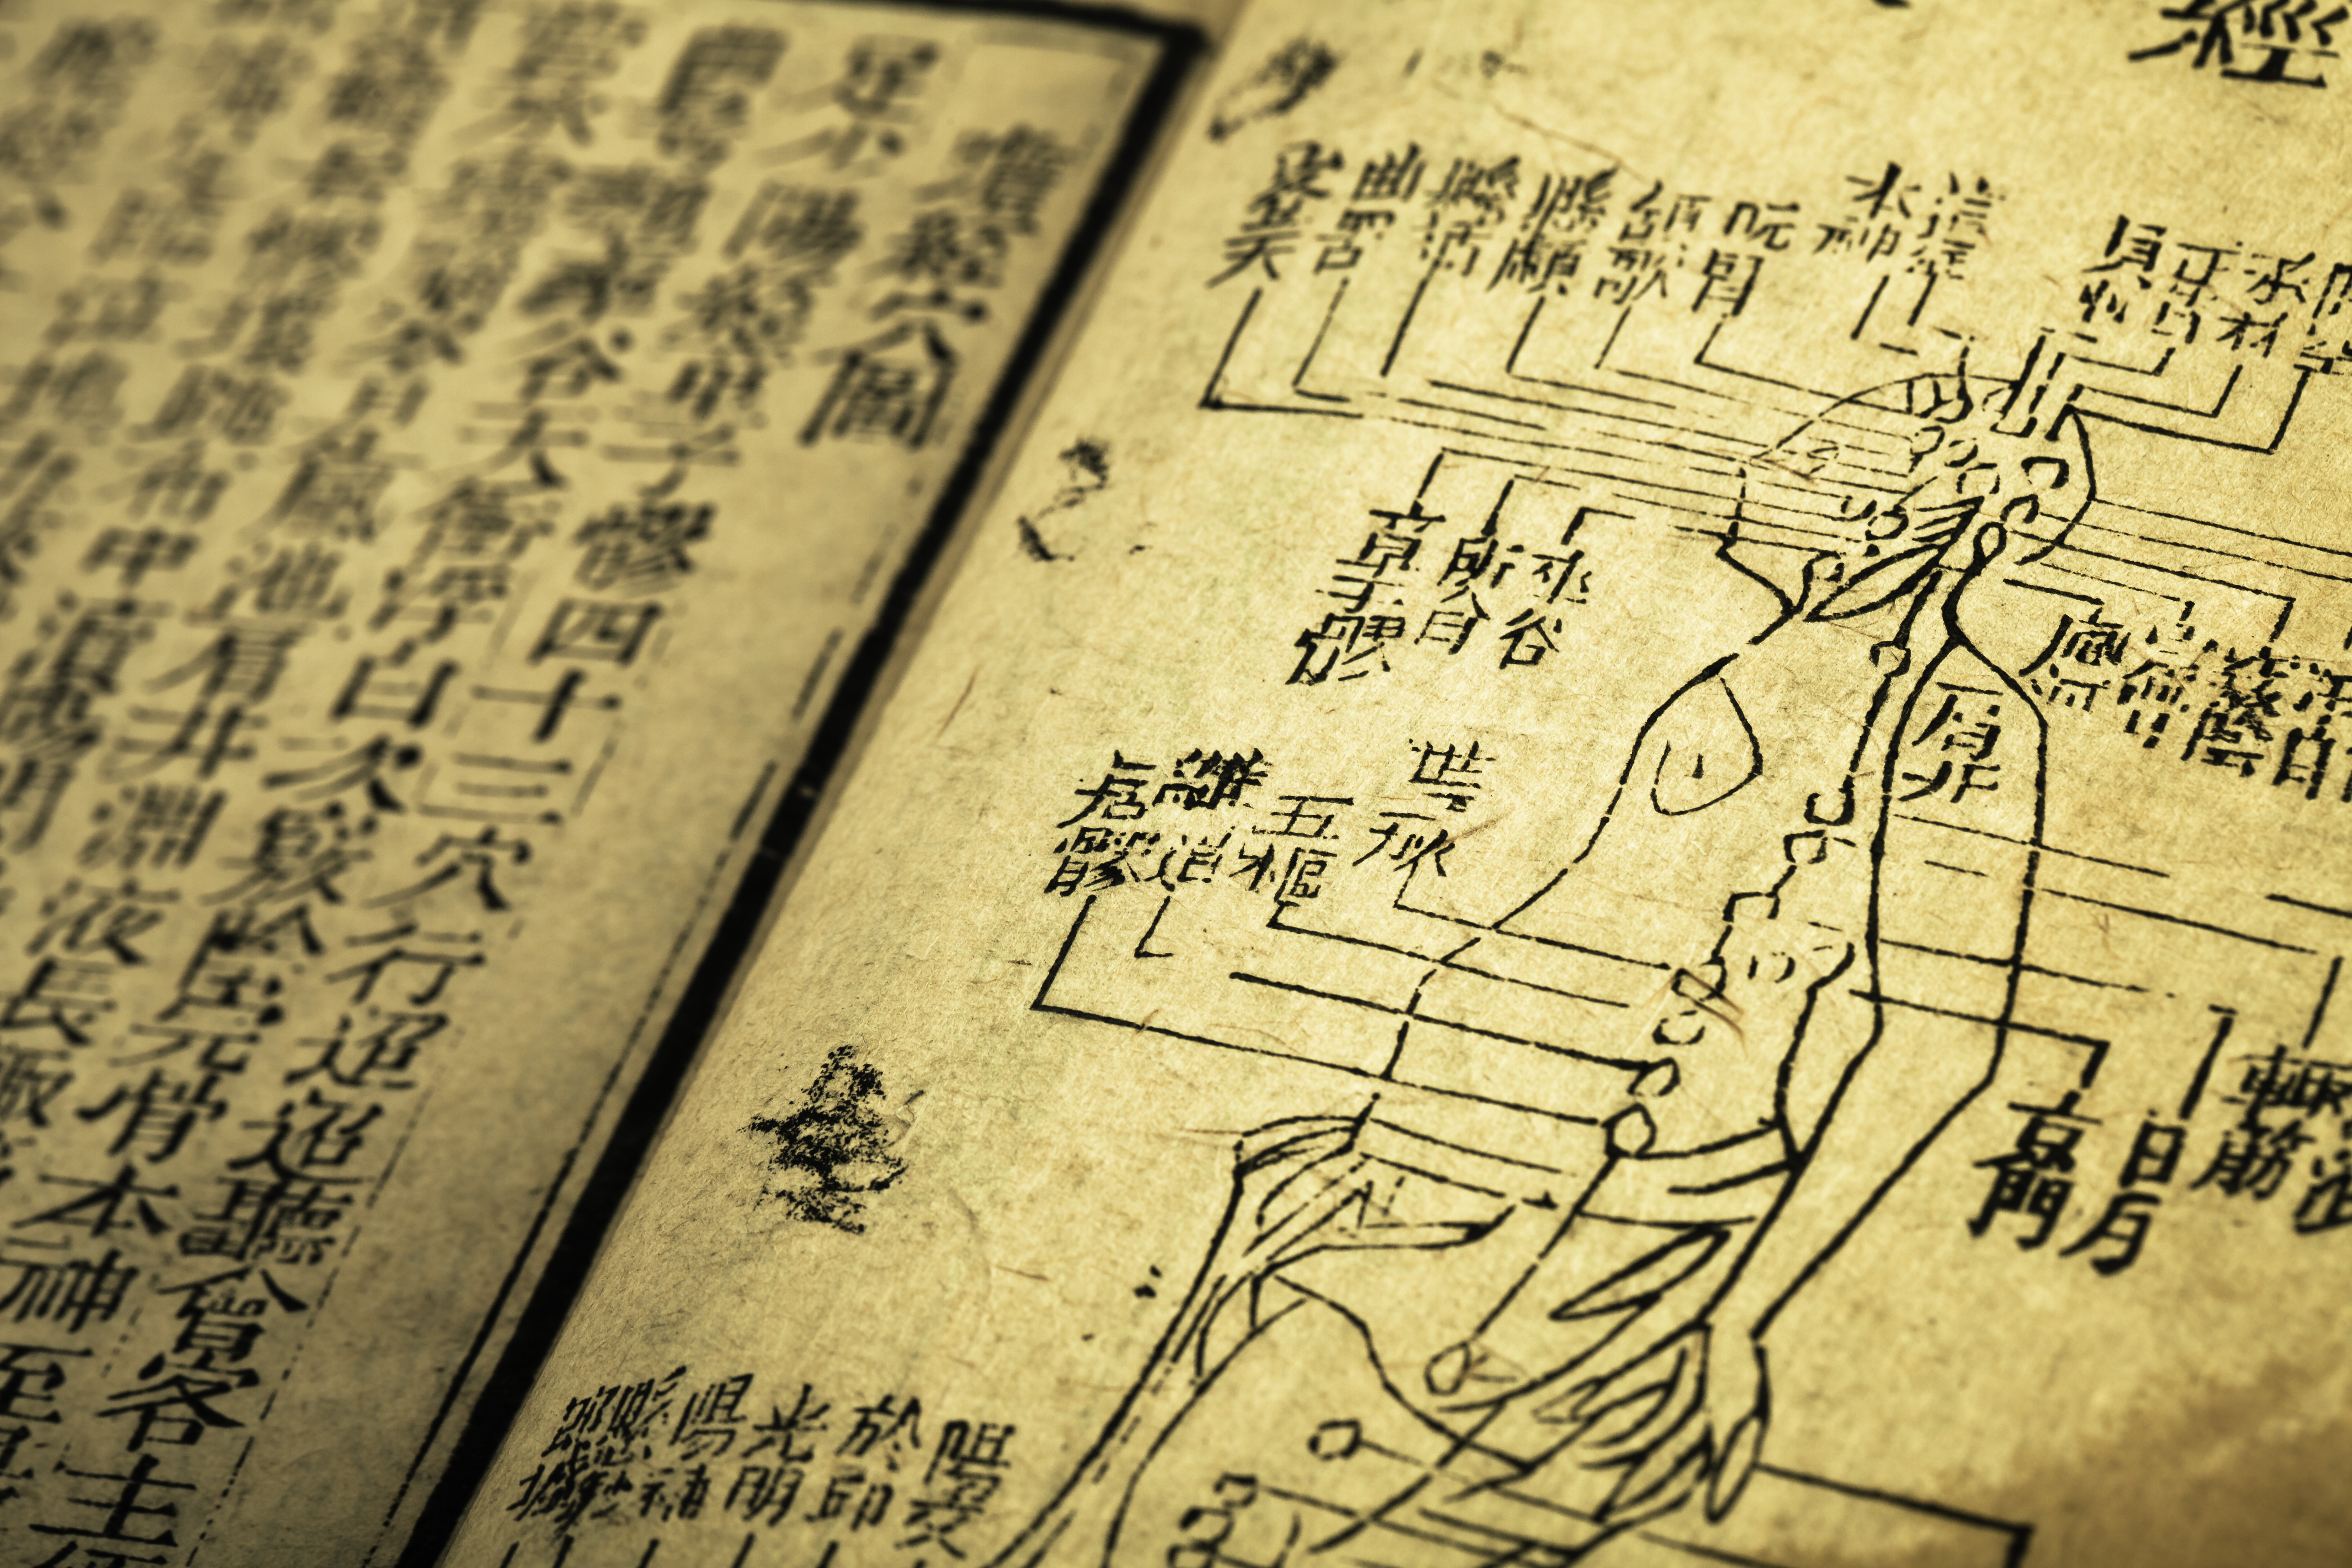 agopuntura marco capuzzo old medicine book from Qing Dynasty